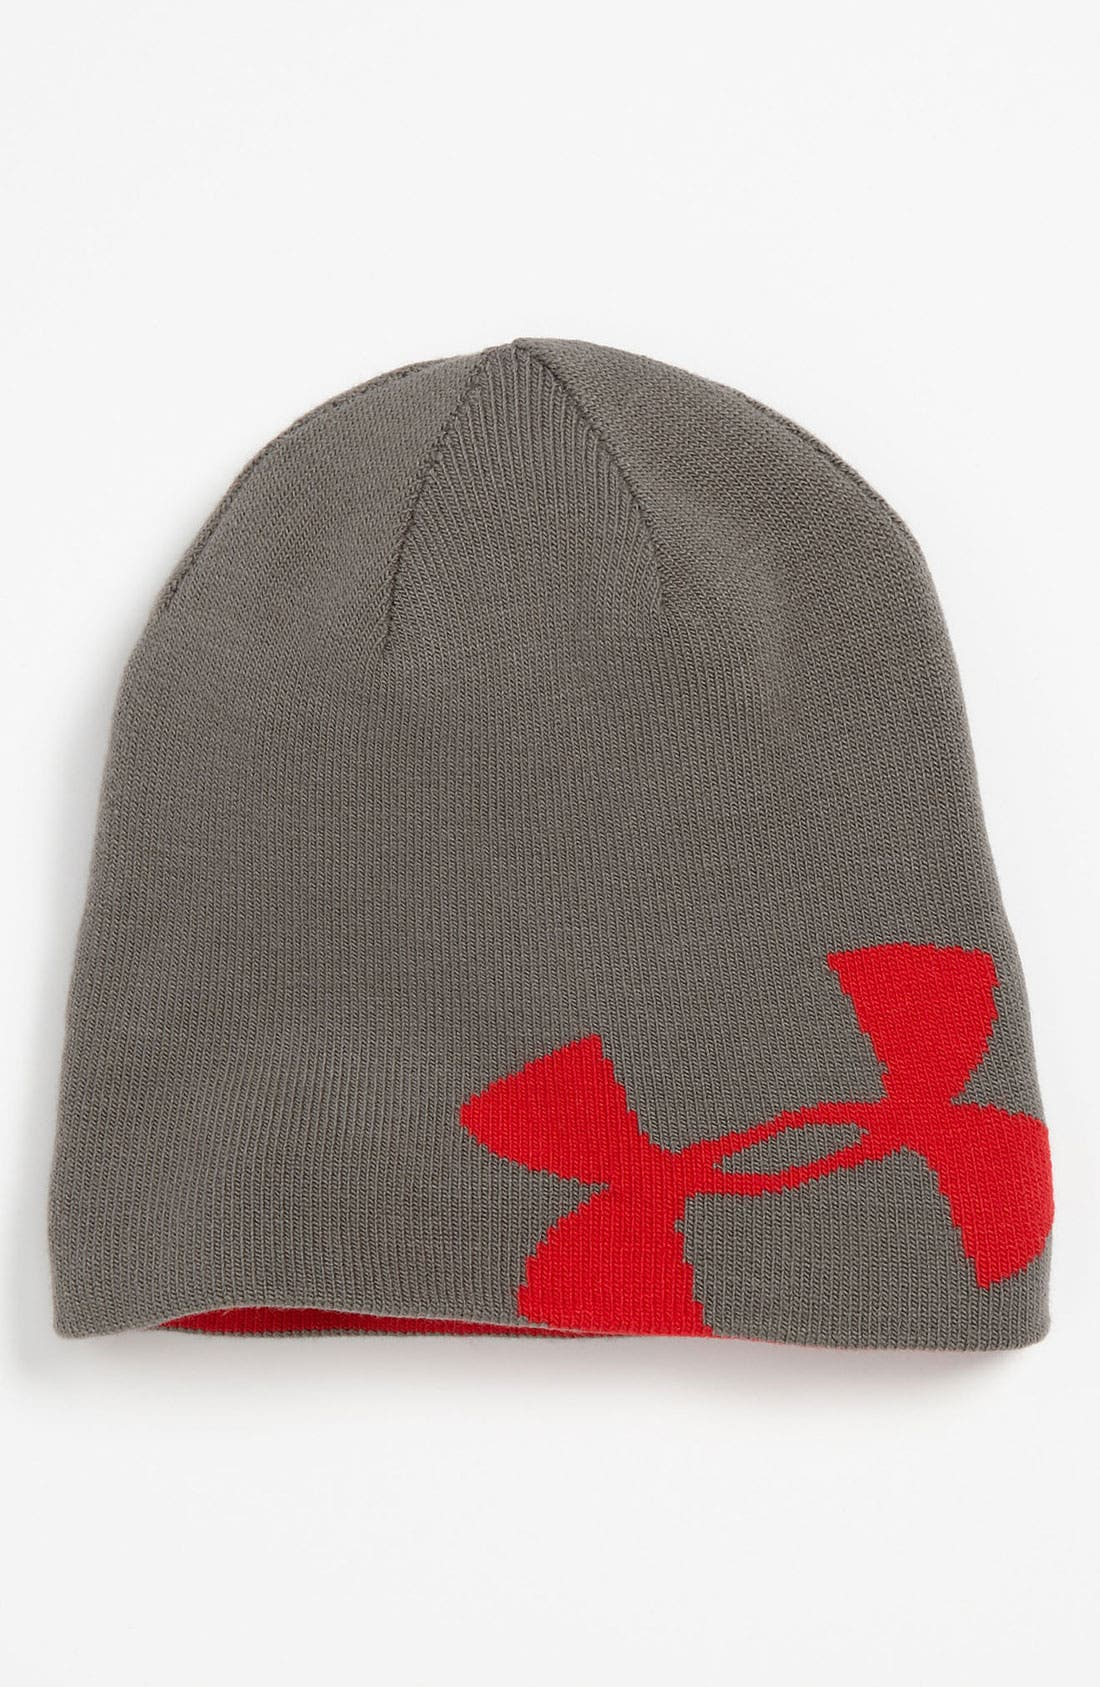 Main Image - Under Armour 'Switch It Up' Beanie (Big Boys)